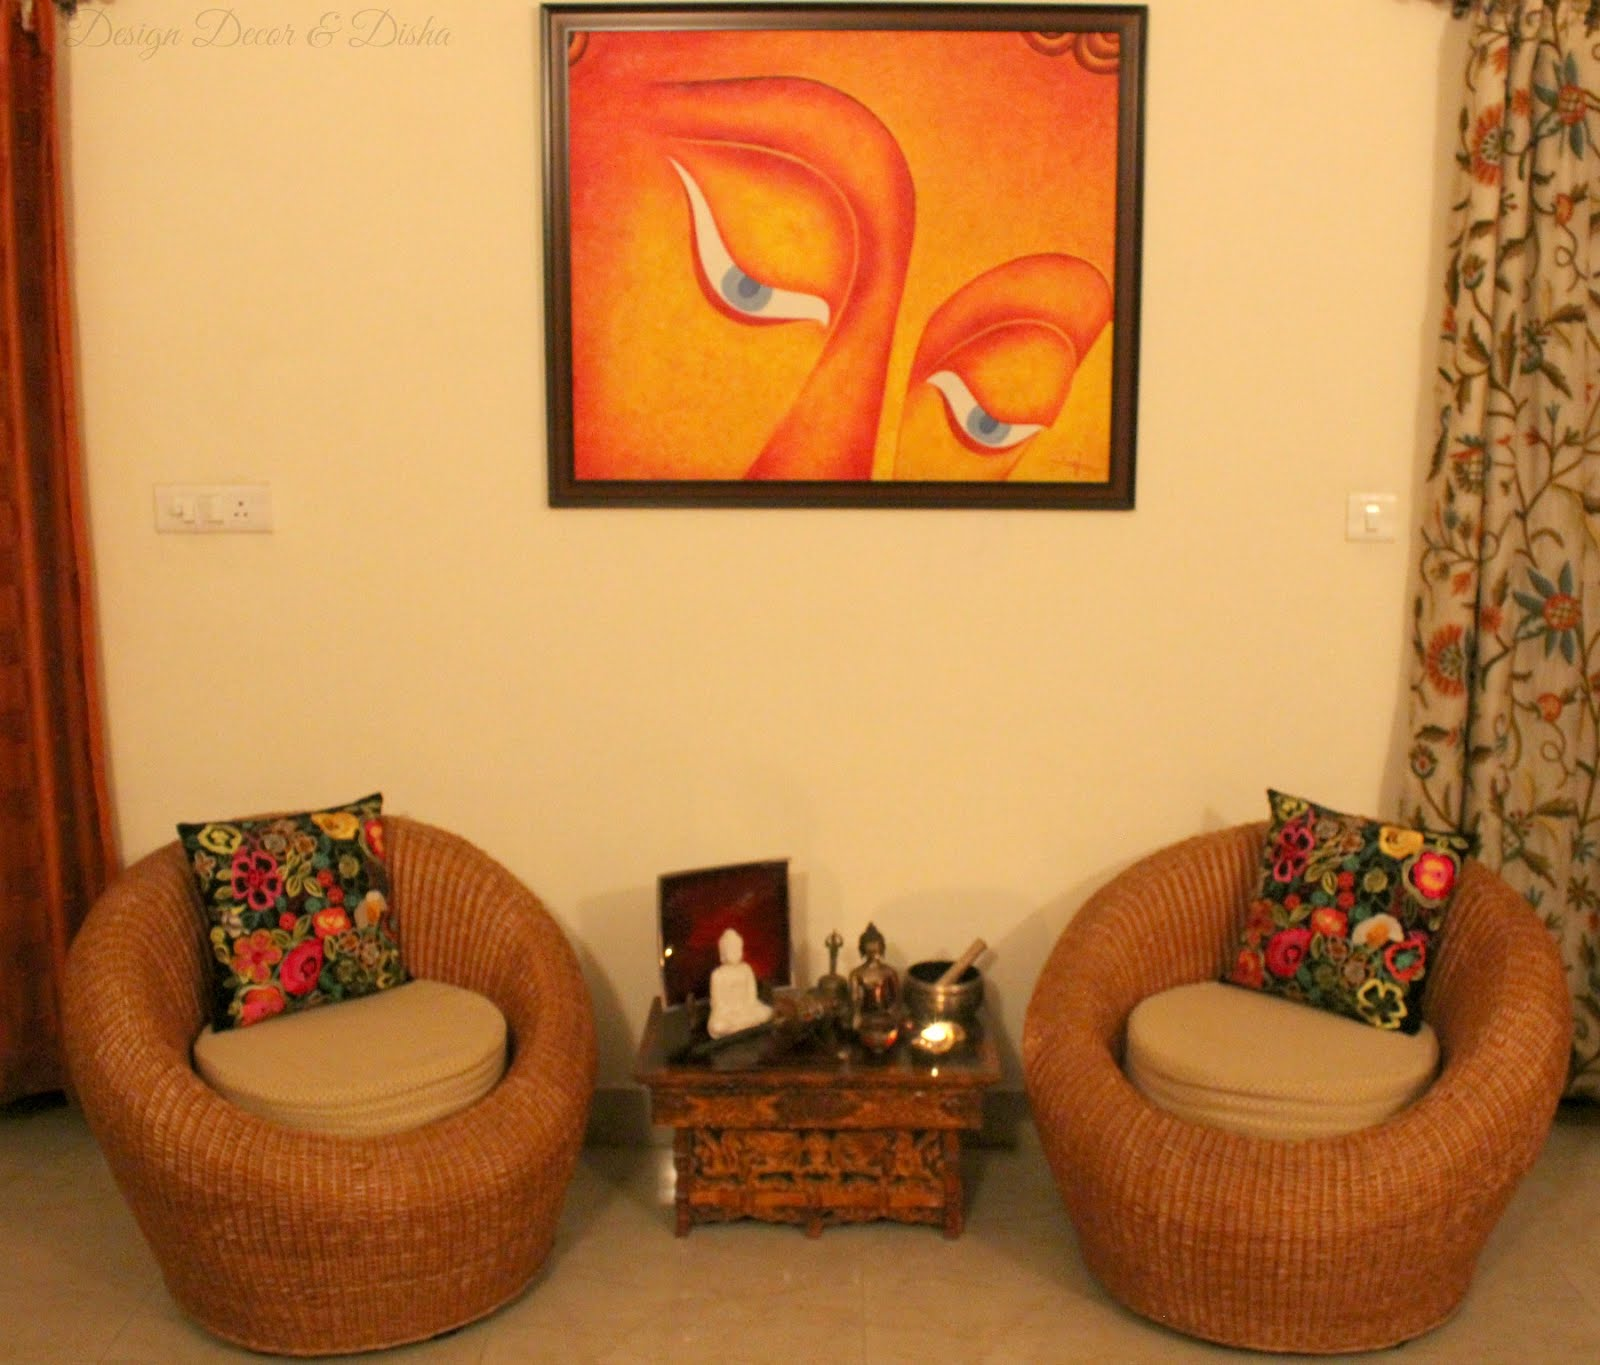 Design decor disha an indian design decor blog home for Home decoration things